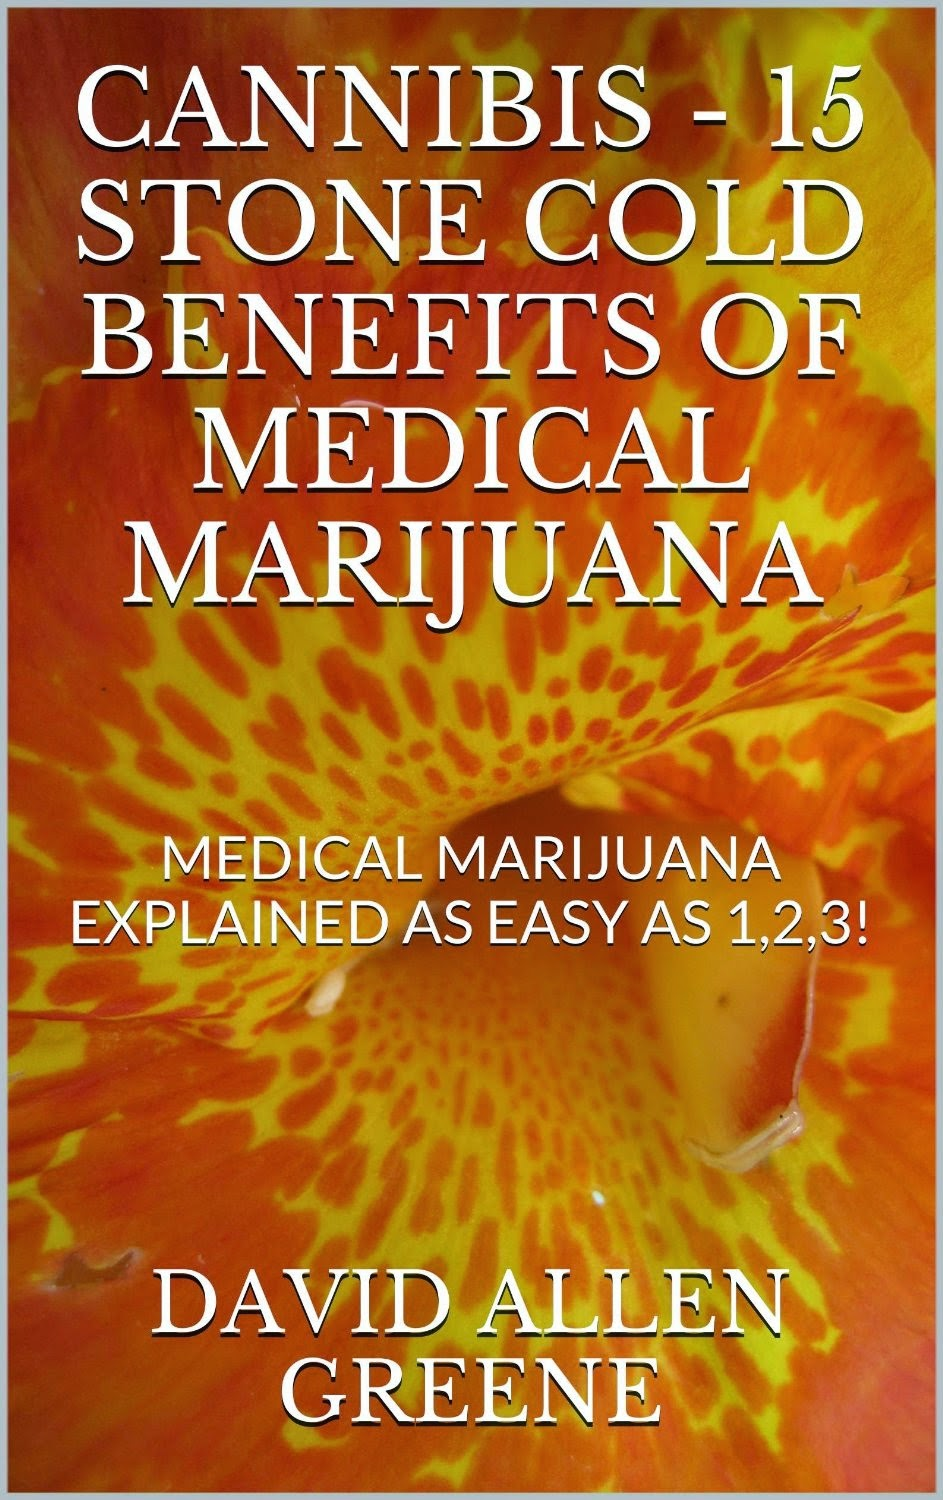 Learn About Medical Cannabis